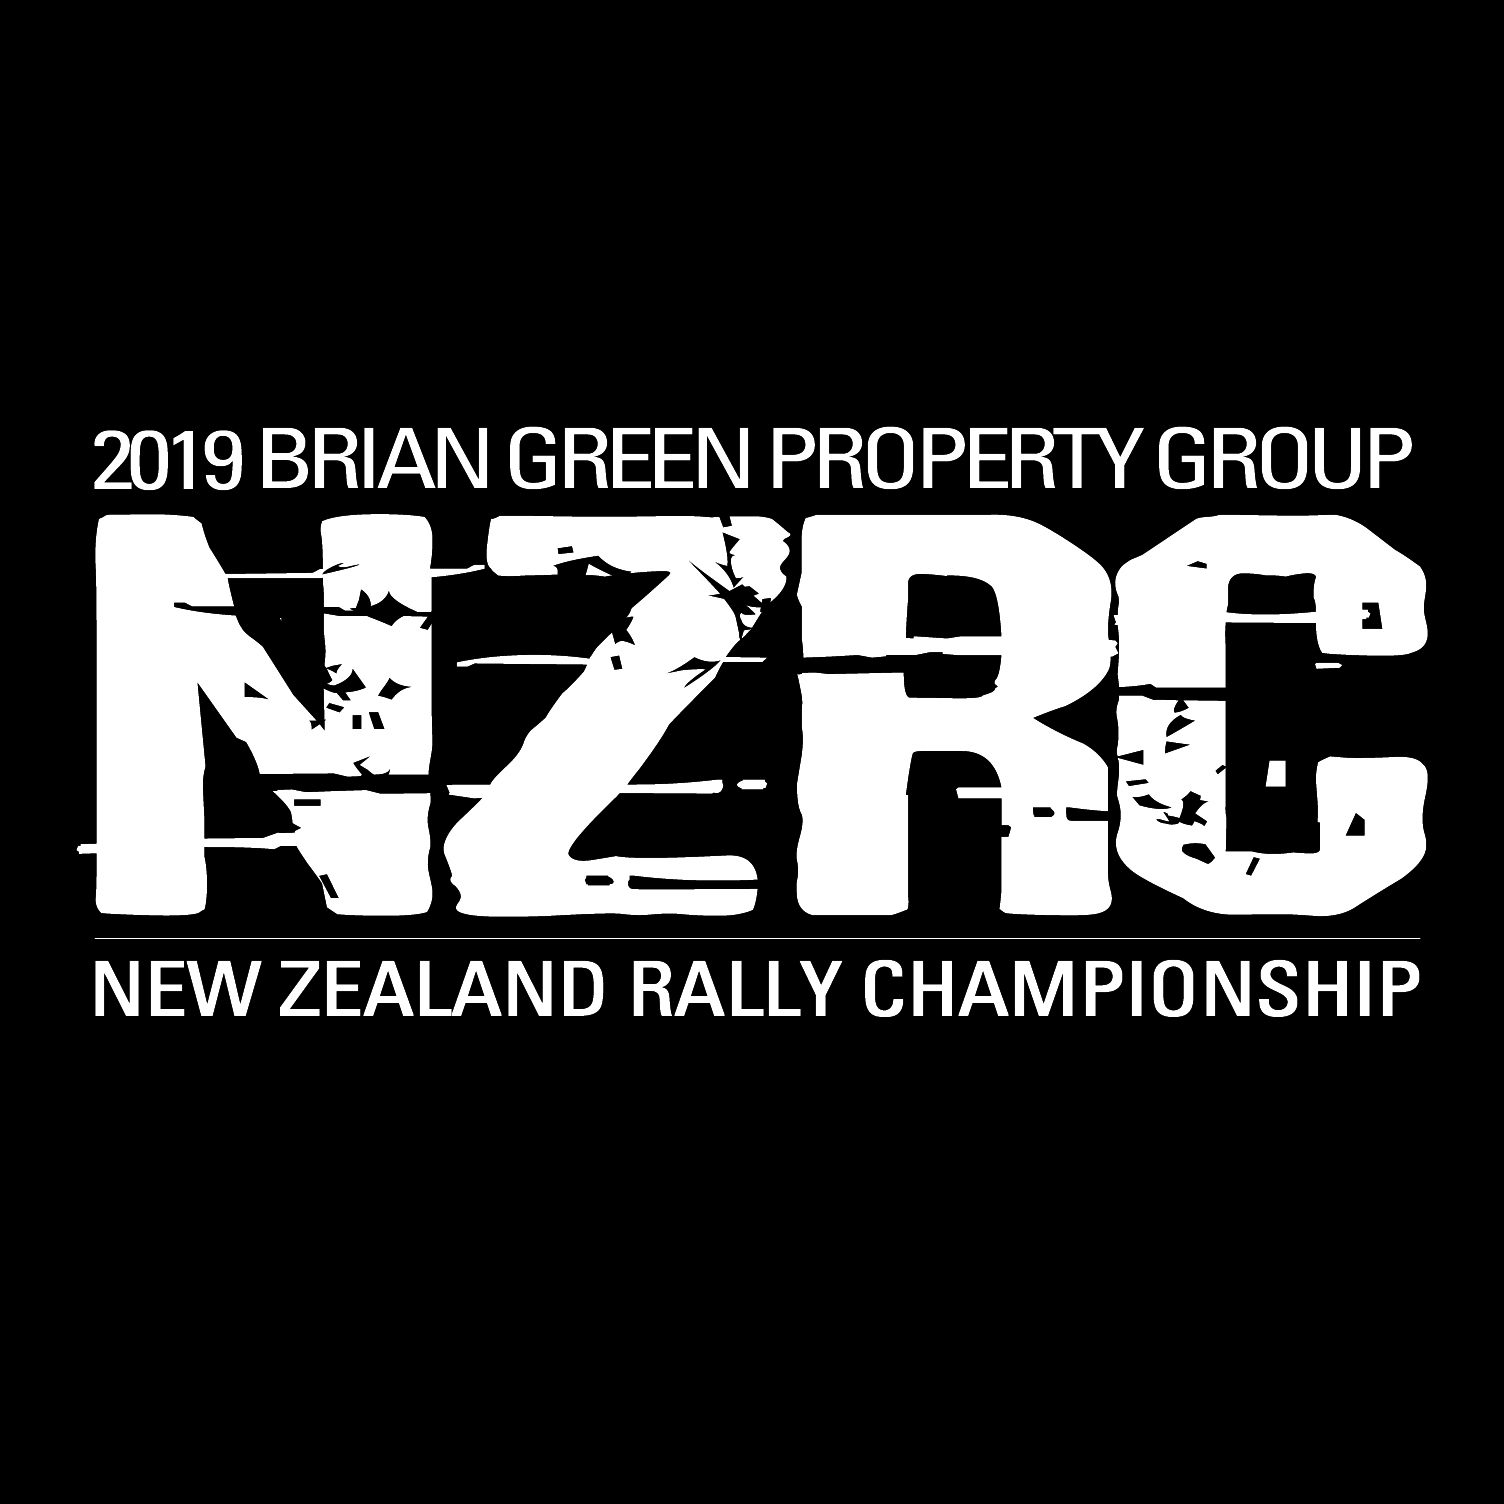 NZRC | :: Brian Green Property Group New Zealand Rally Championship ::